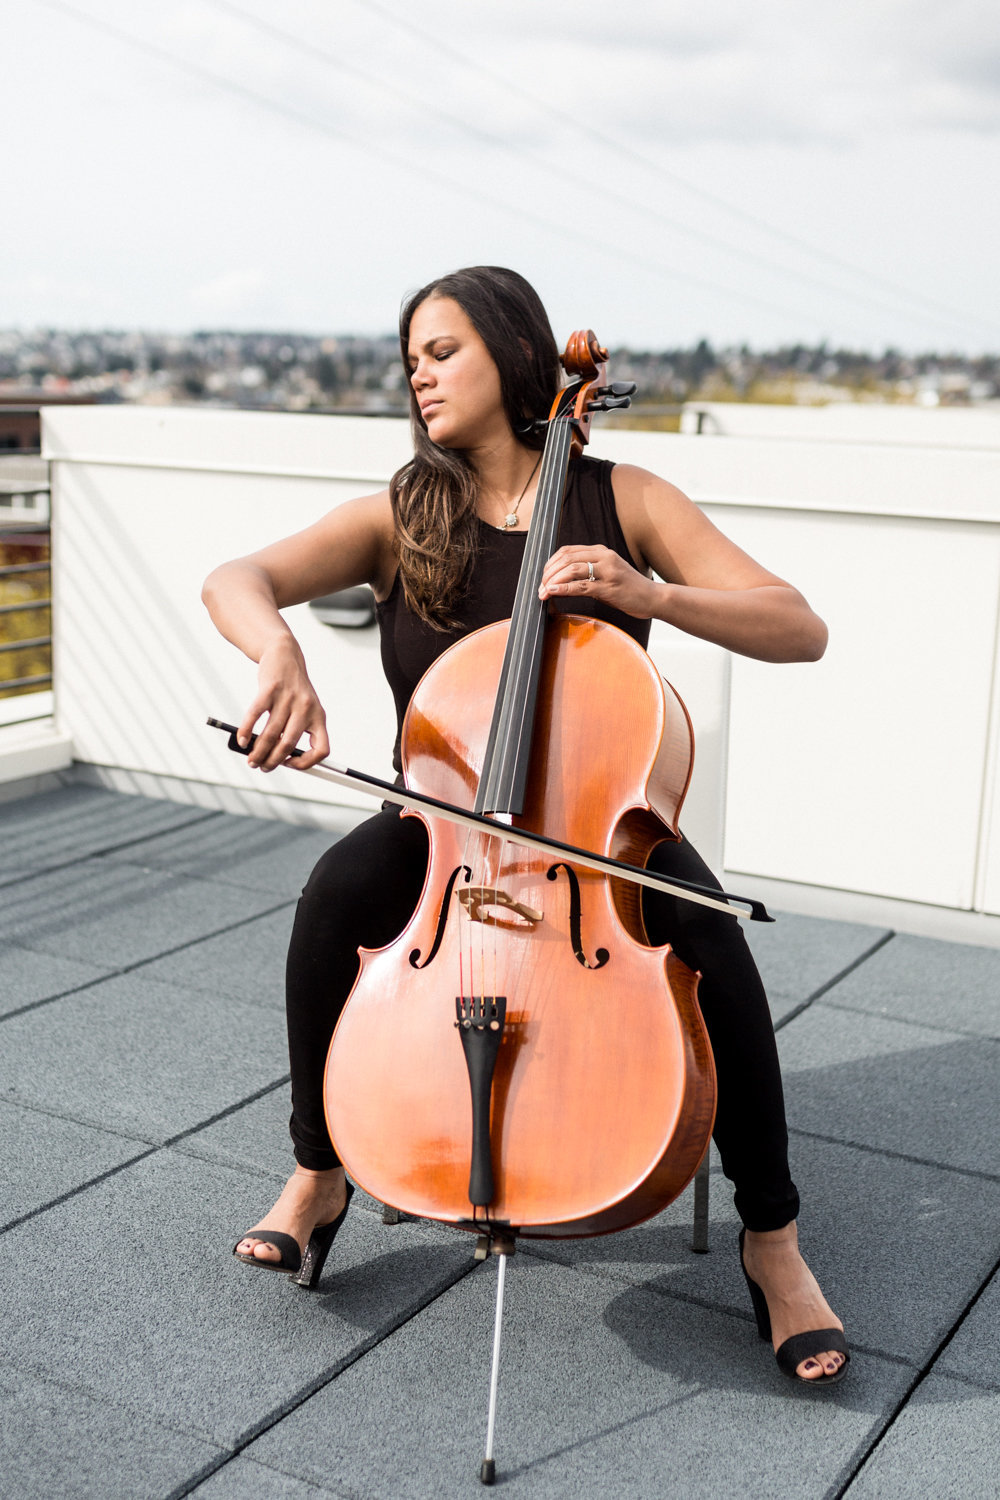 cellist-portrait-lifestyle-danielle-motif-photography-12